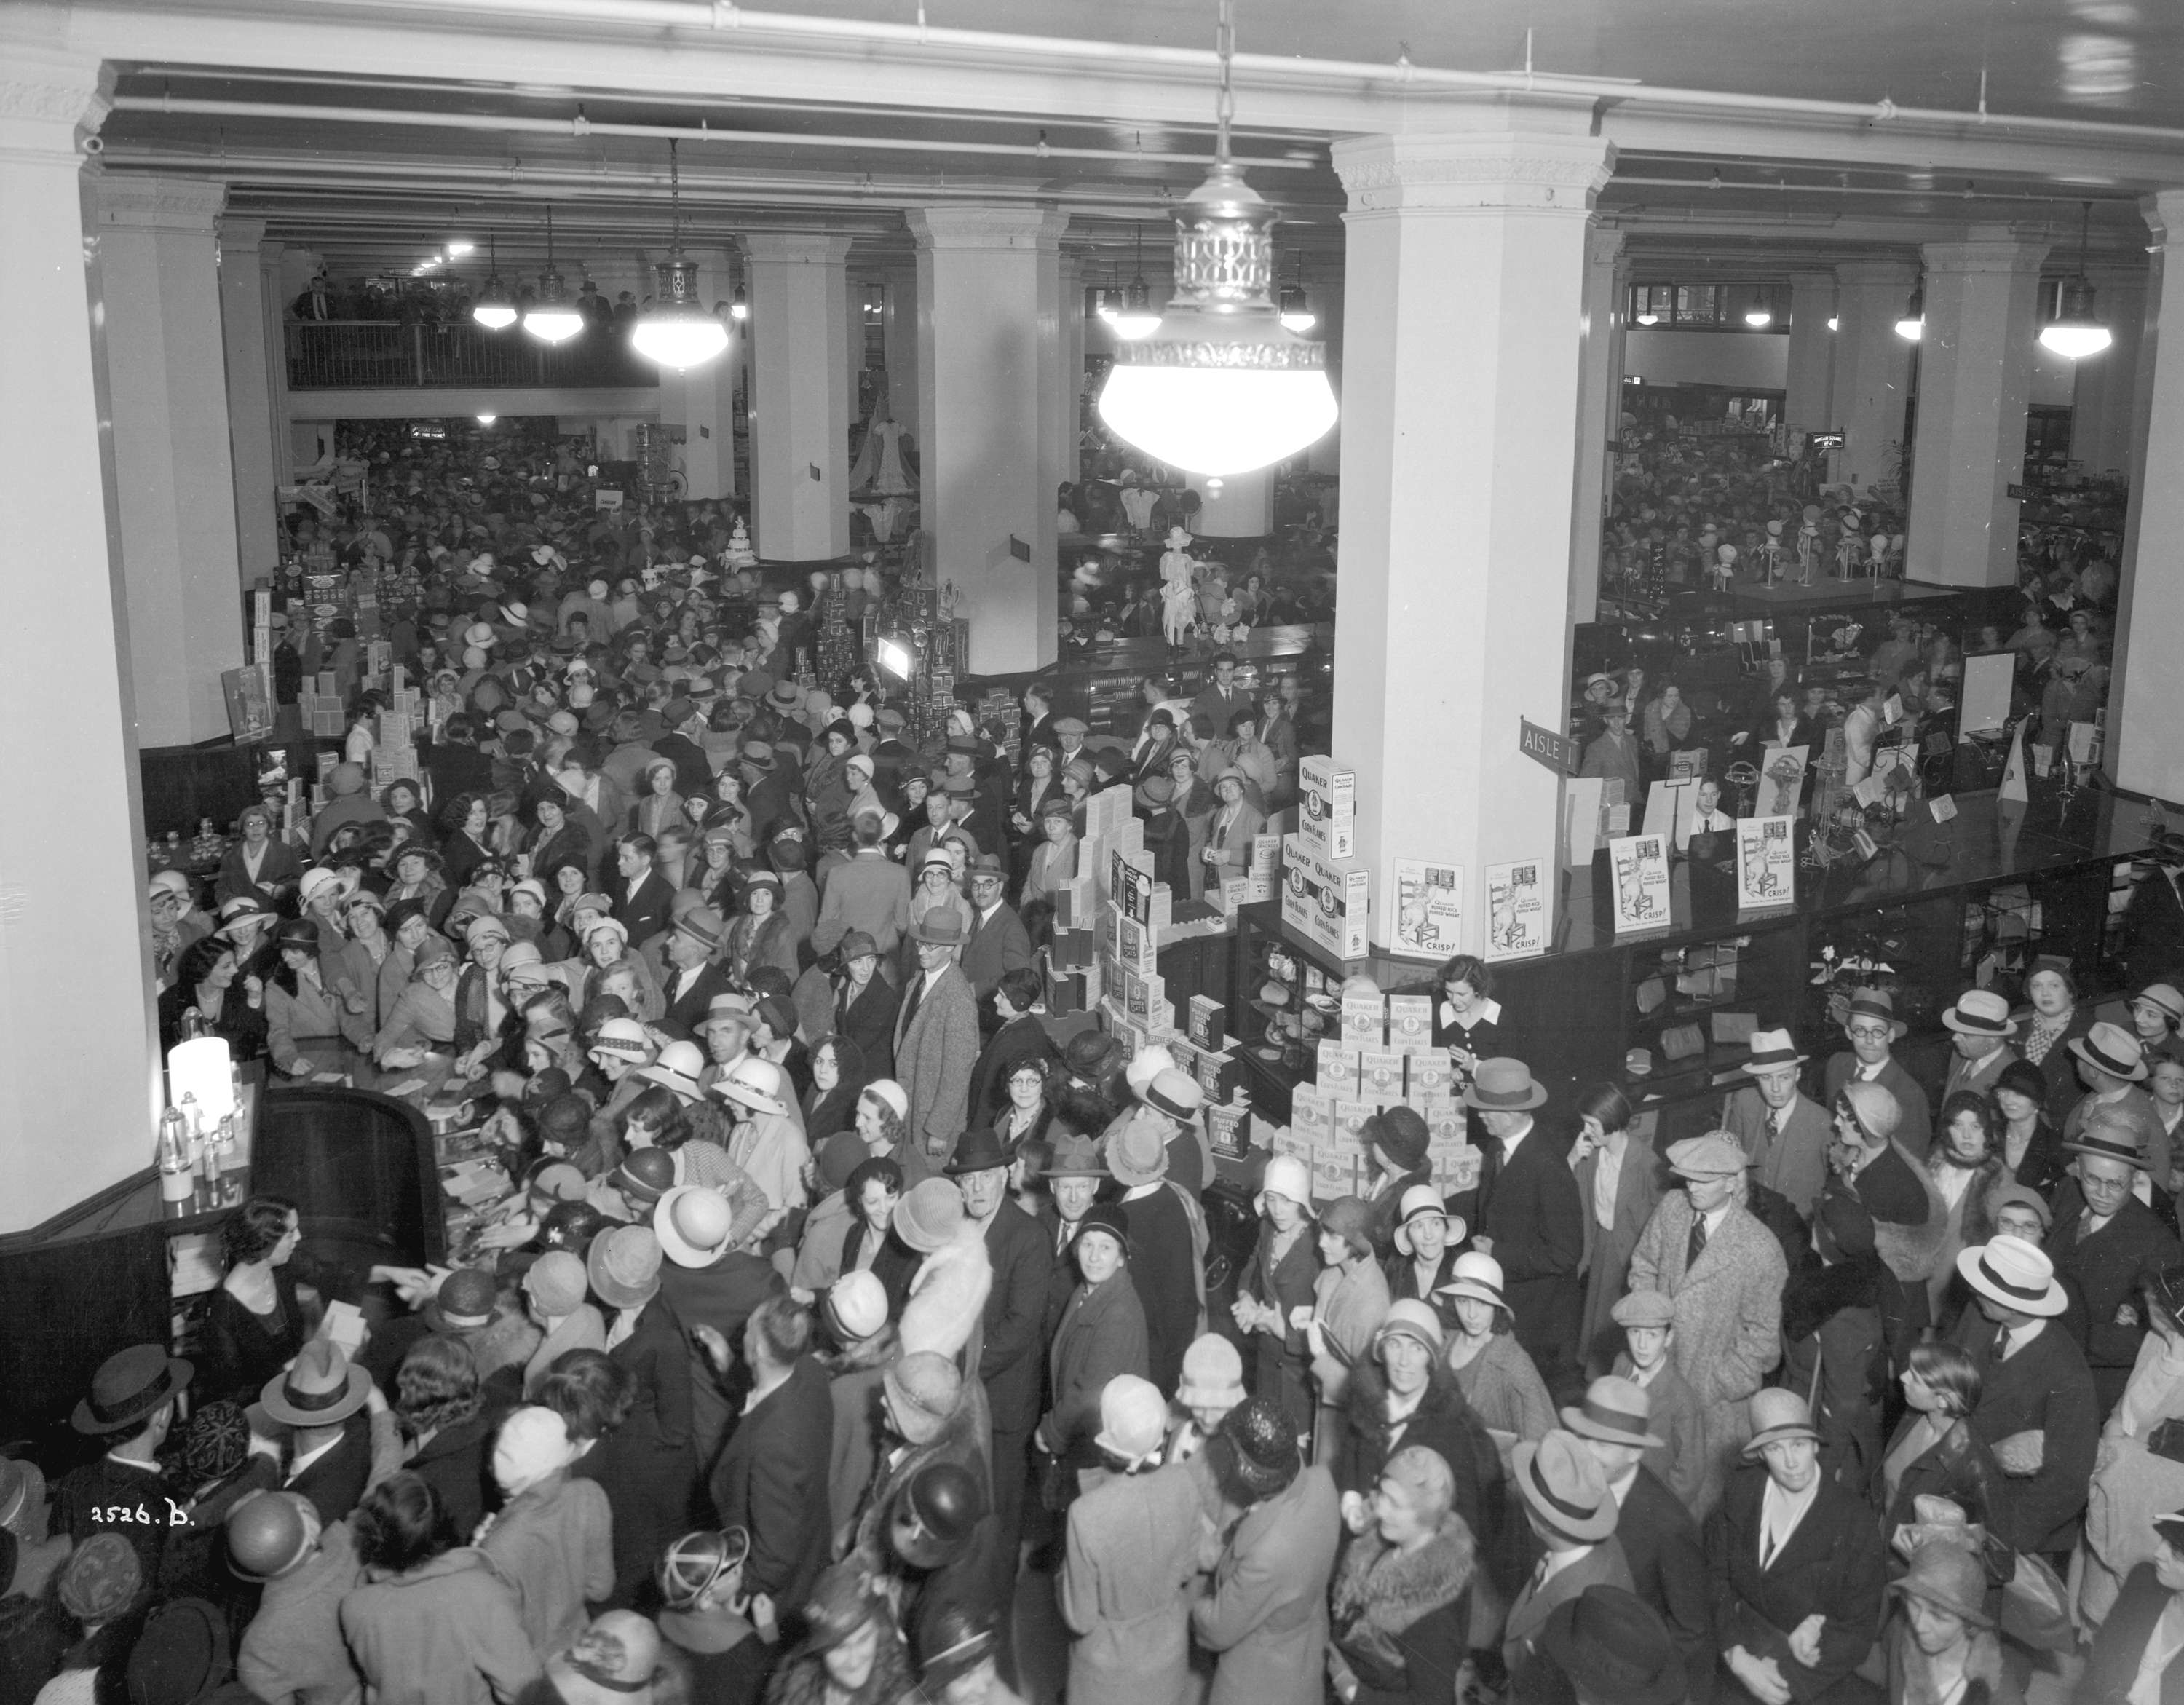 Crowds in the food department of Hudson's Bay in 1932 (Stuart Thomson/HBC)